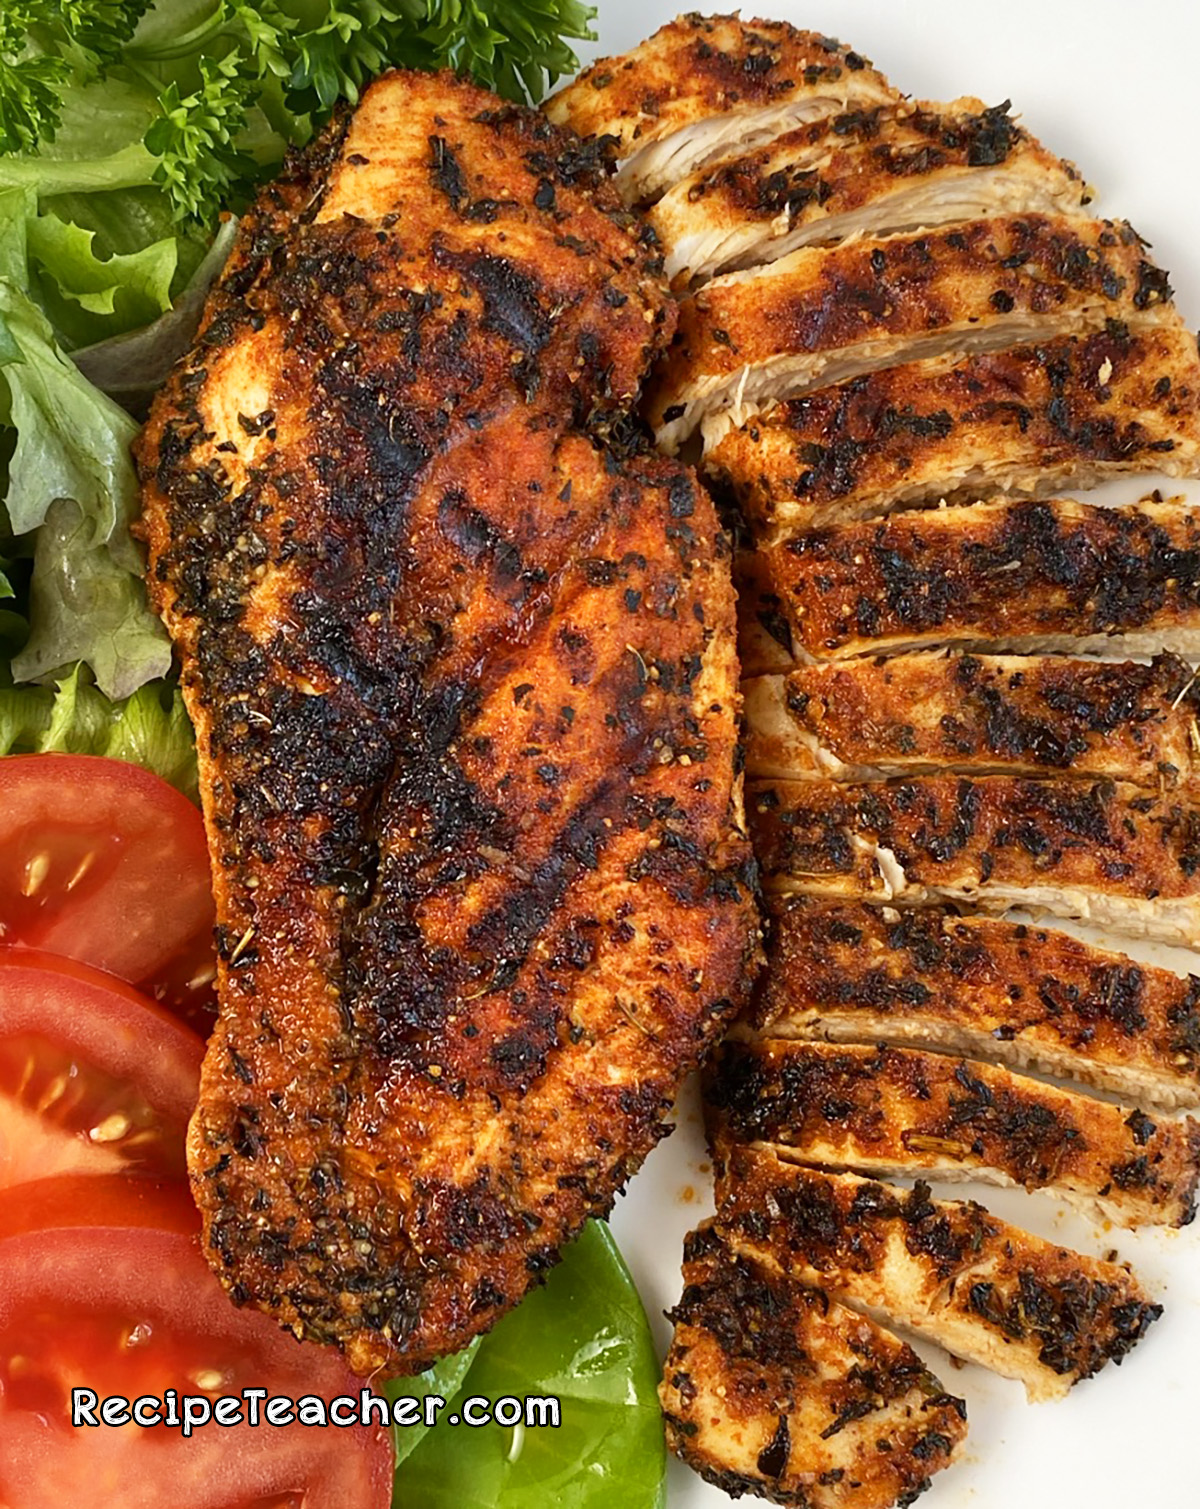 George Foreman Grill boneless, skinless chicken breasts